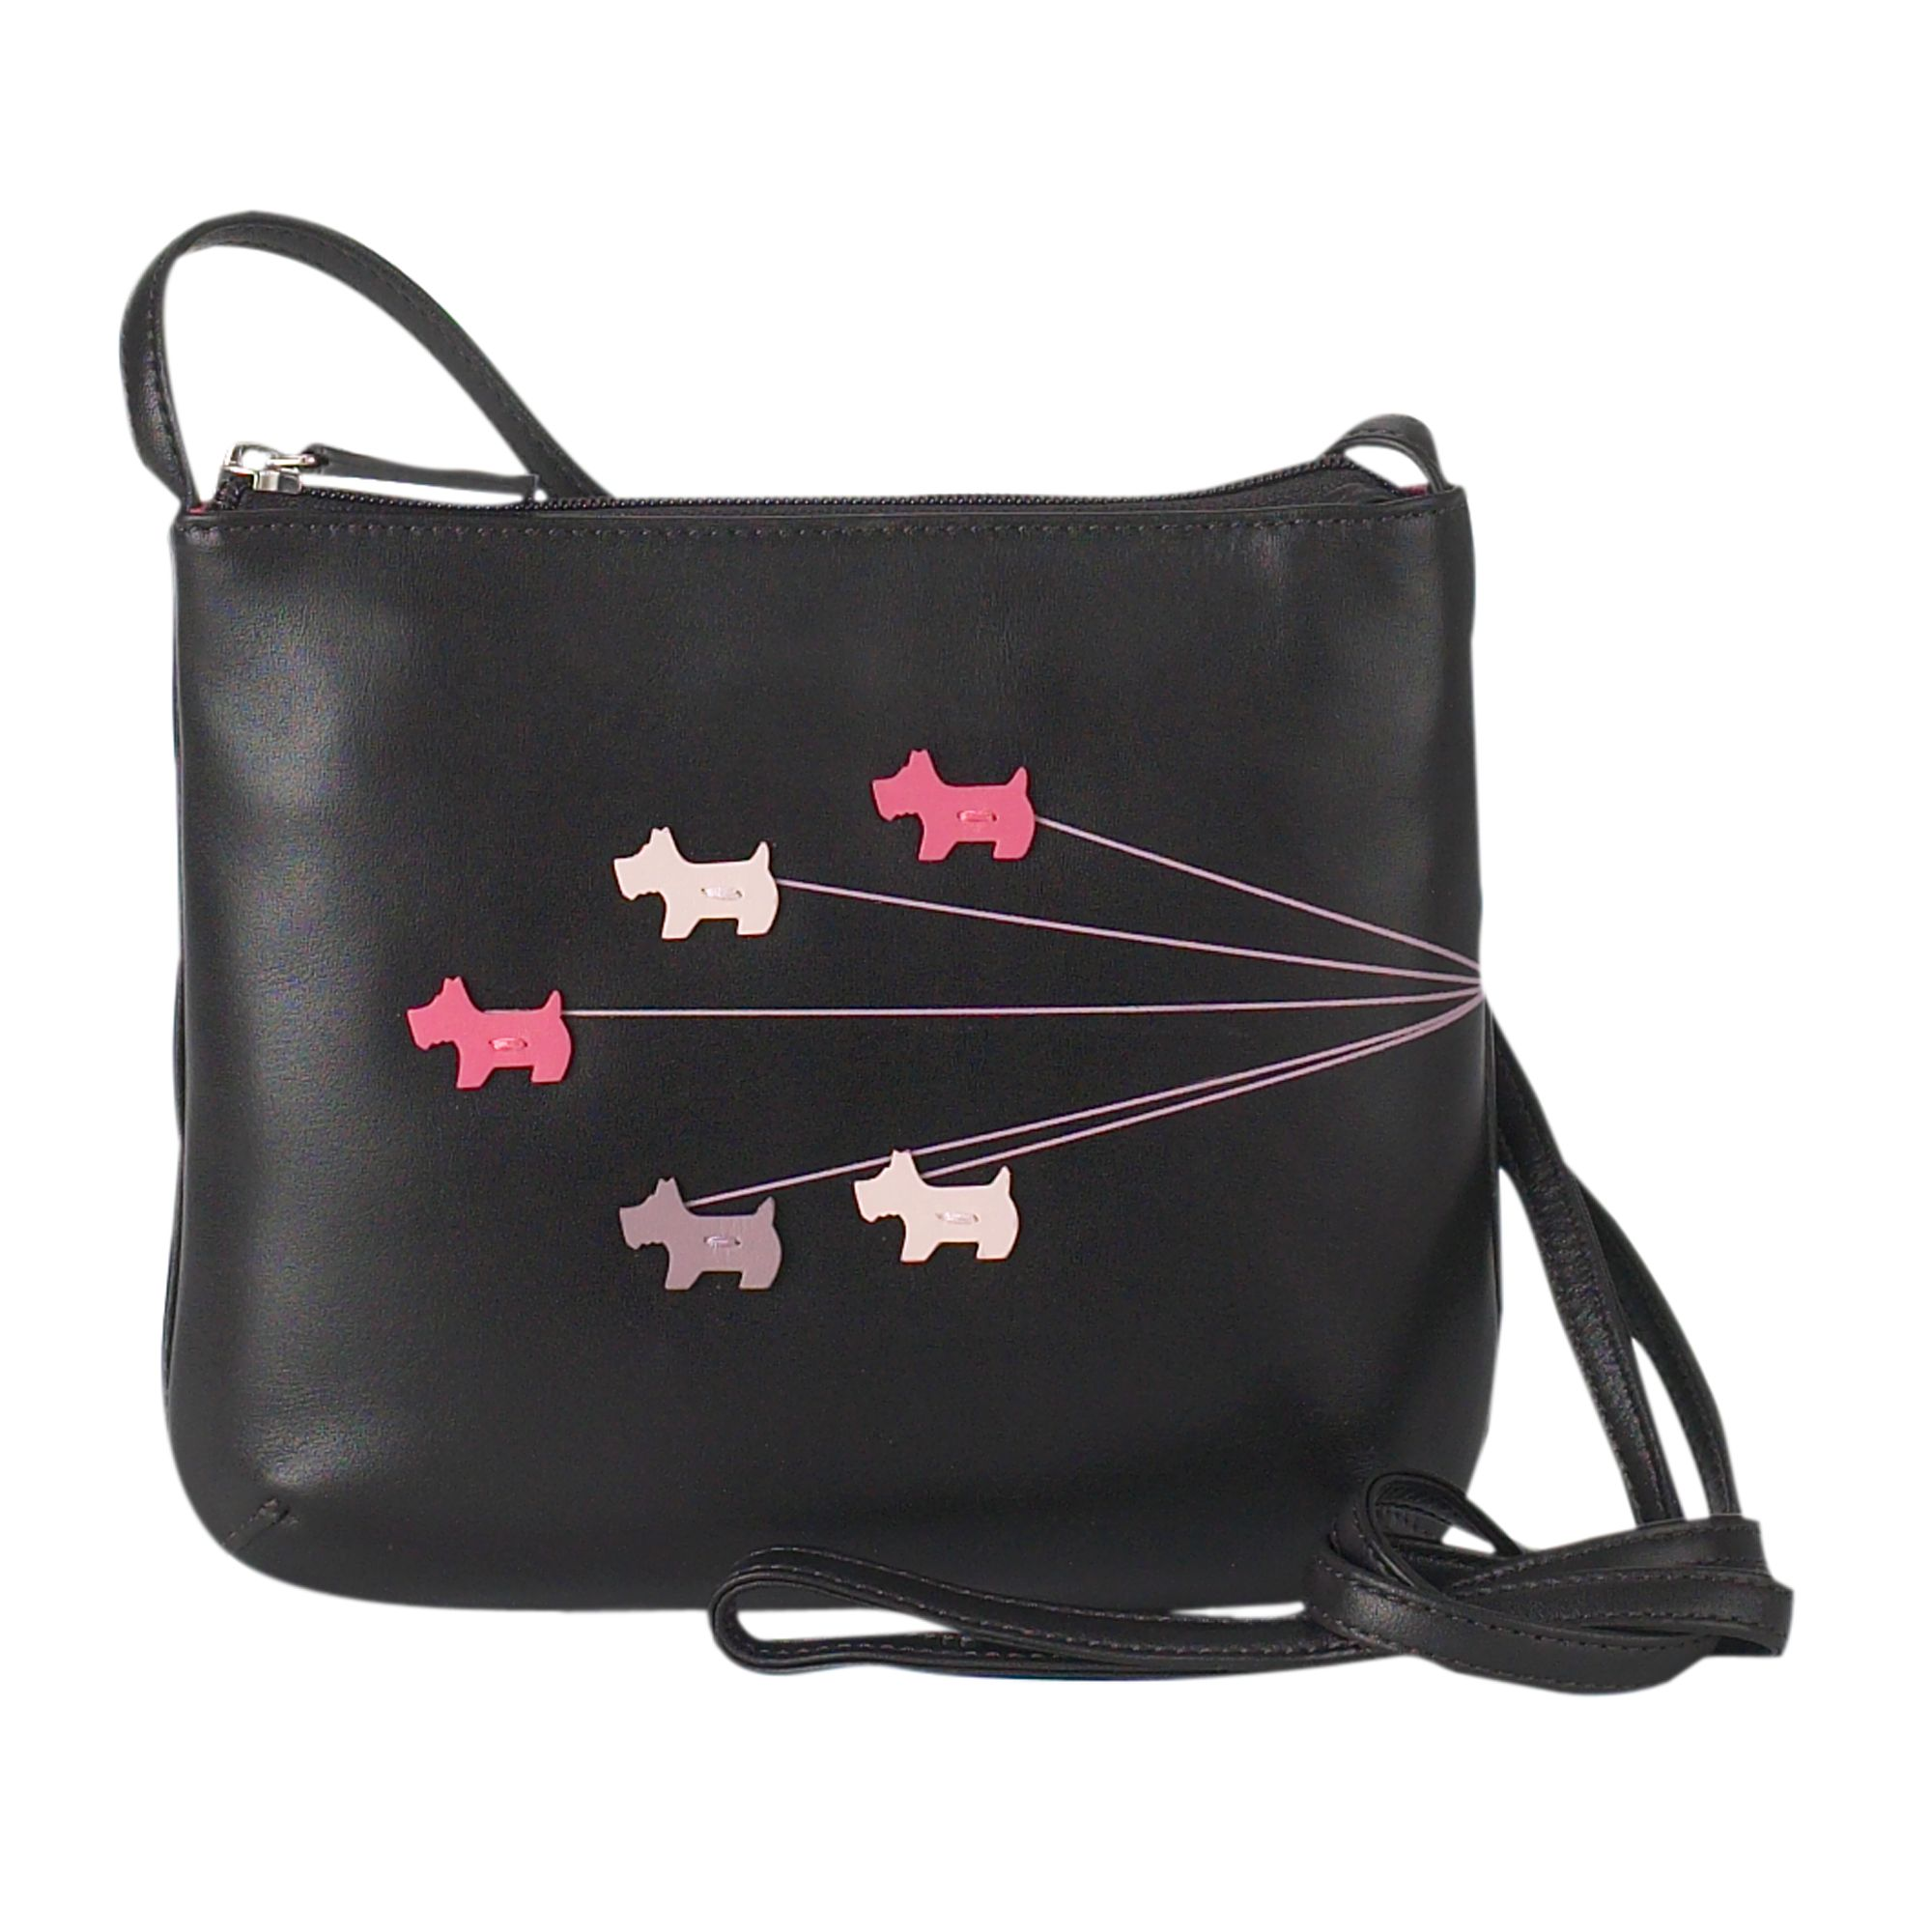 Walkies medium leather crossbody bag